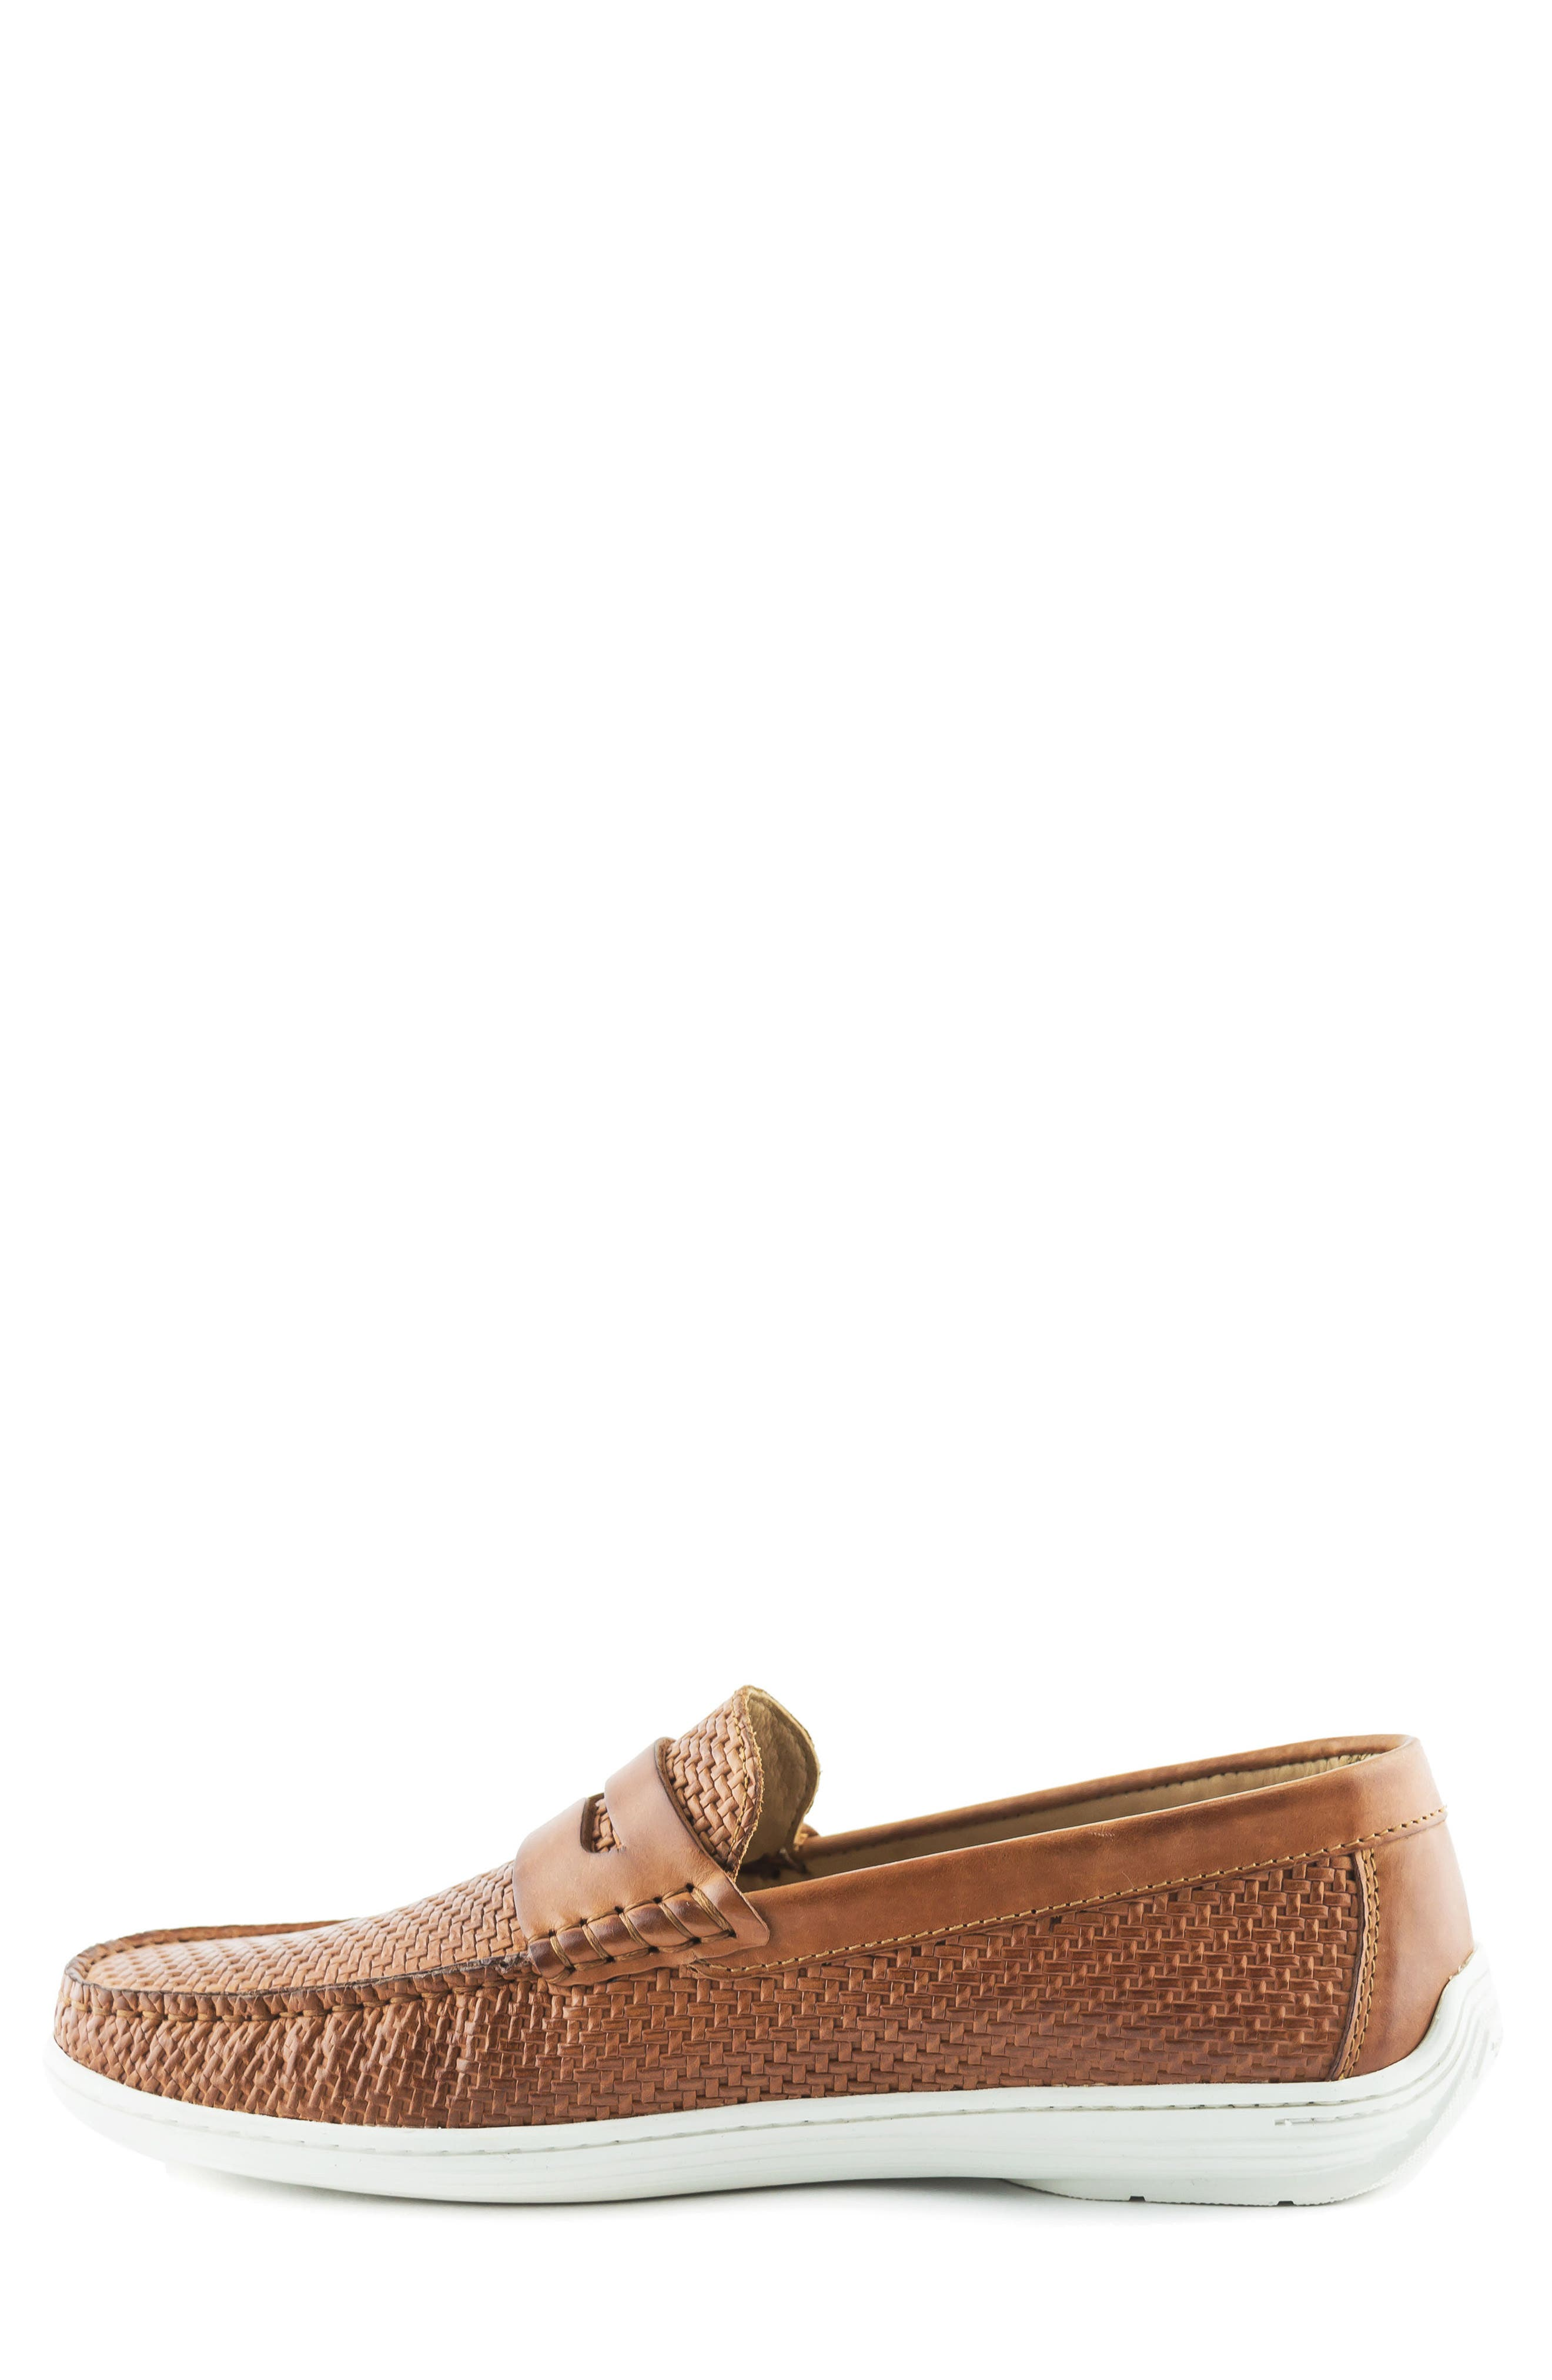 Atlantic Penny Loafer,                             Alternate thumbnail 18, color,